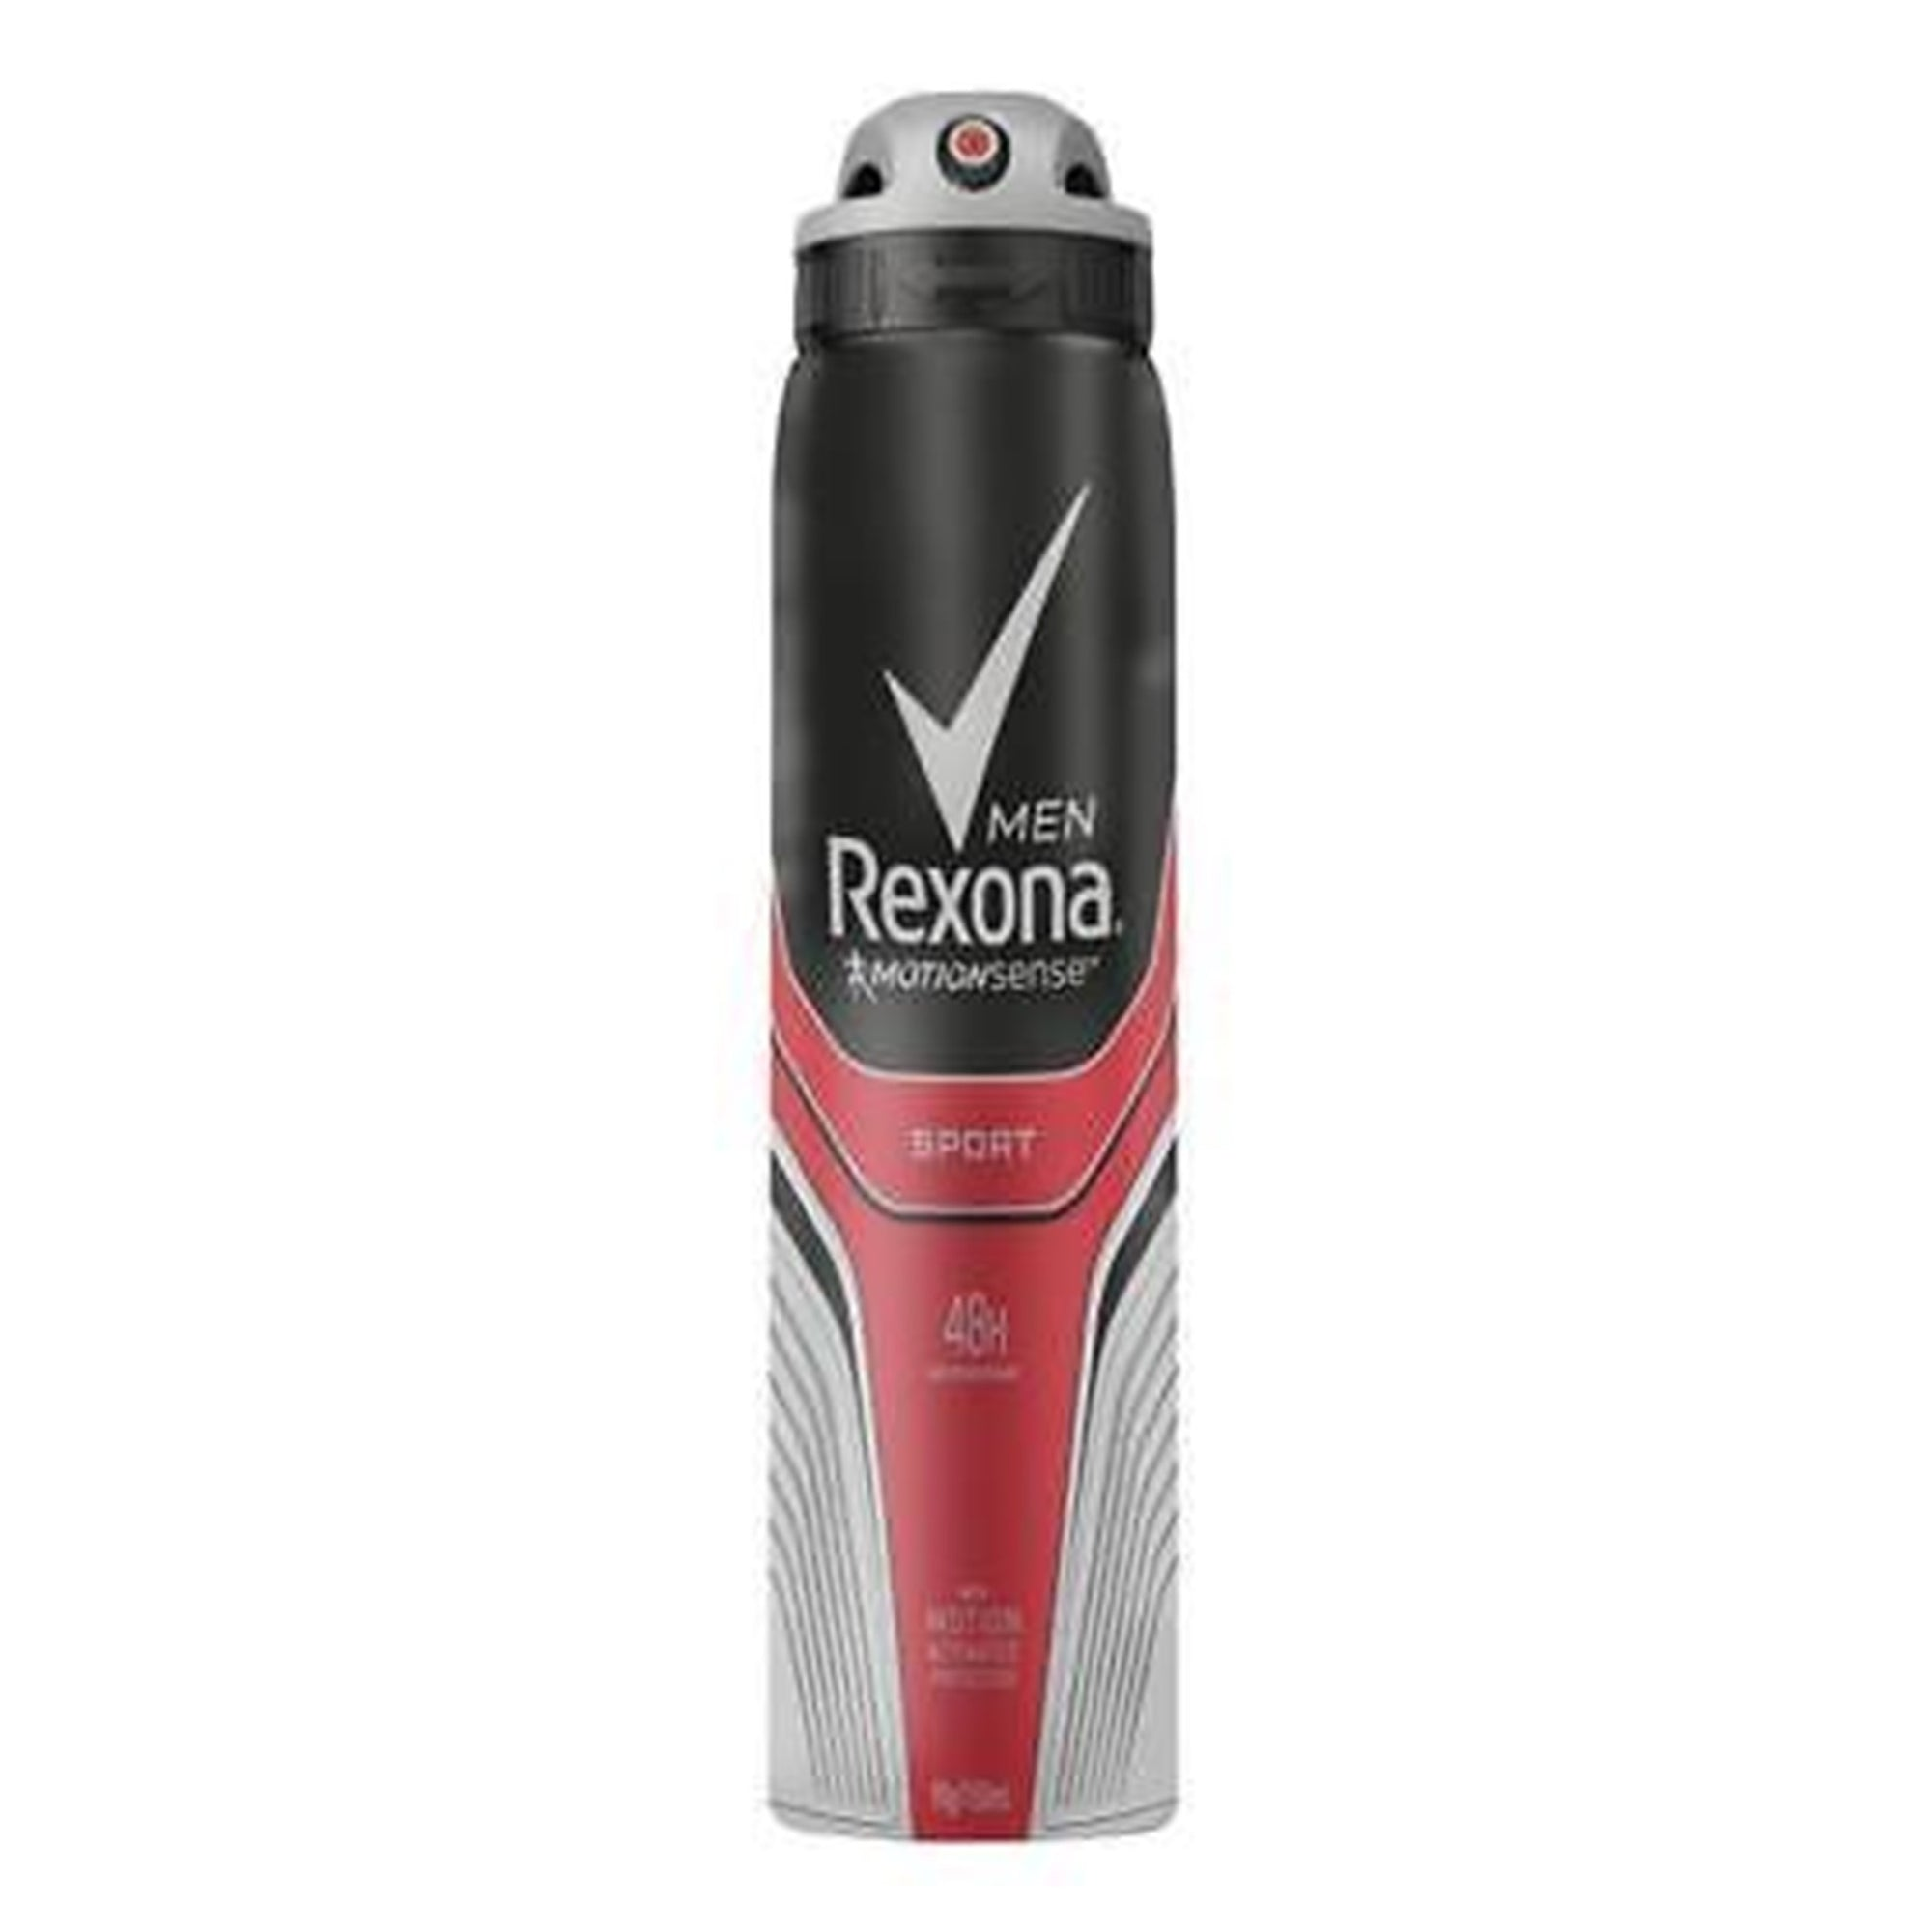 Rexona Men Spray Sport 90g/150mL